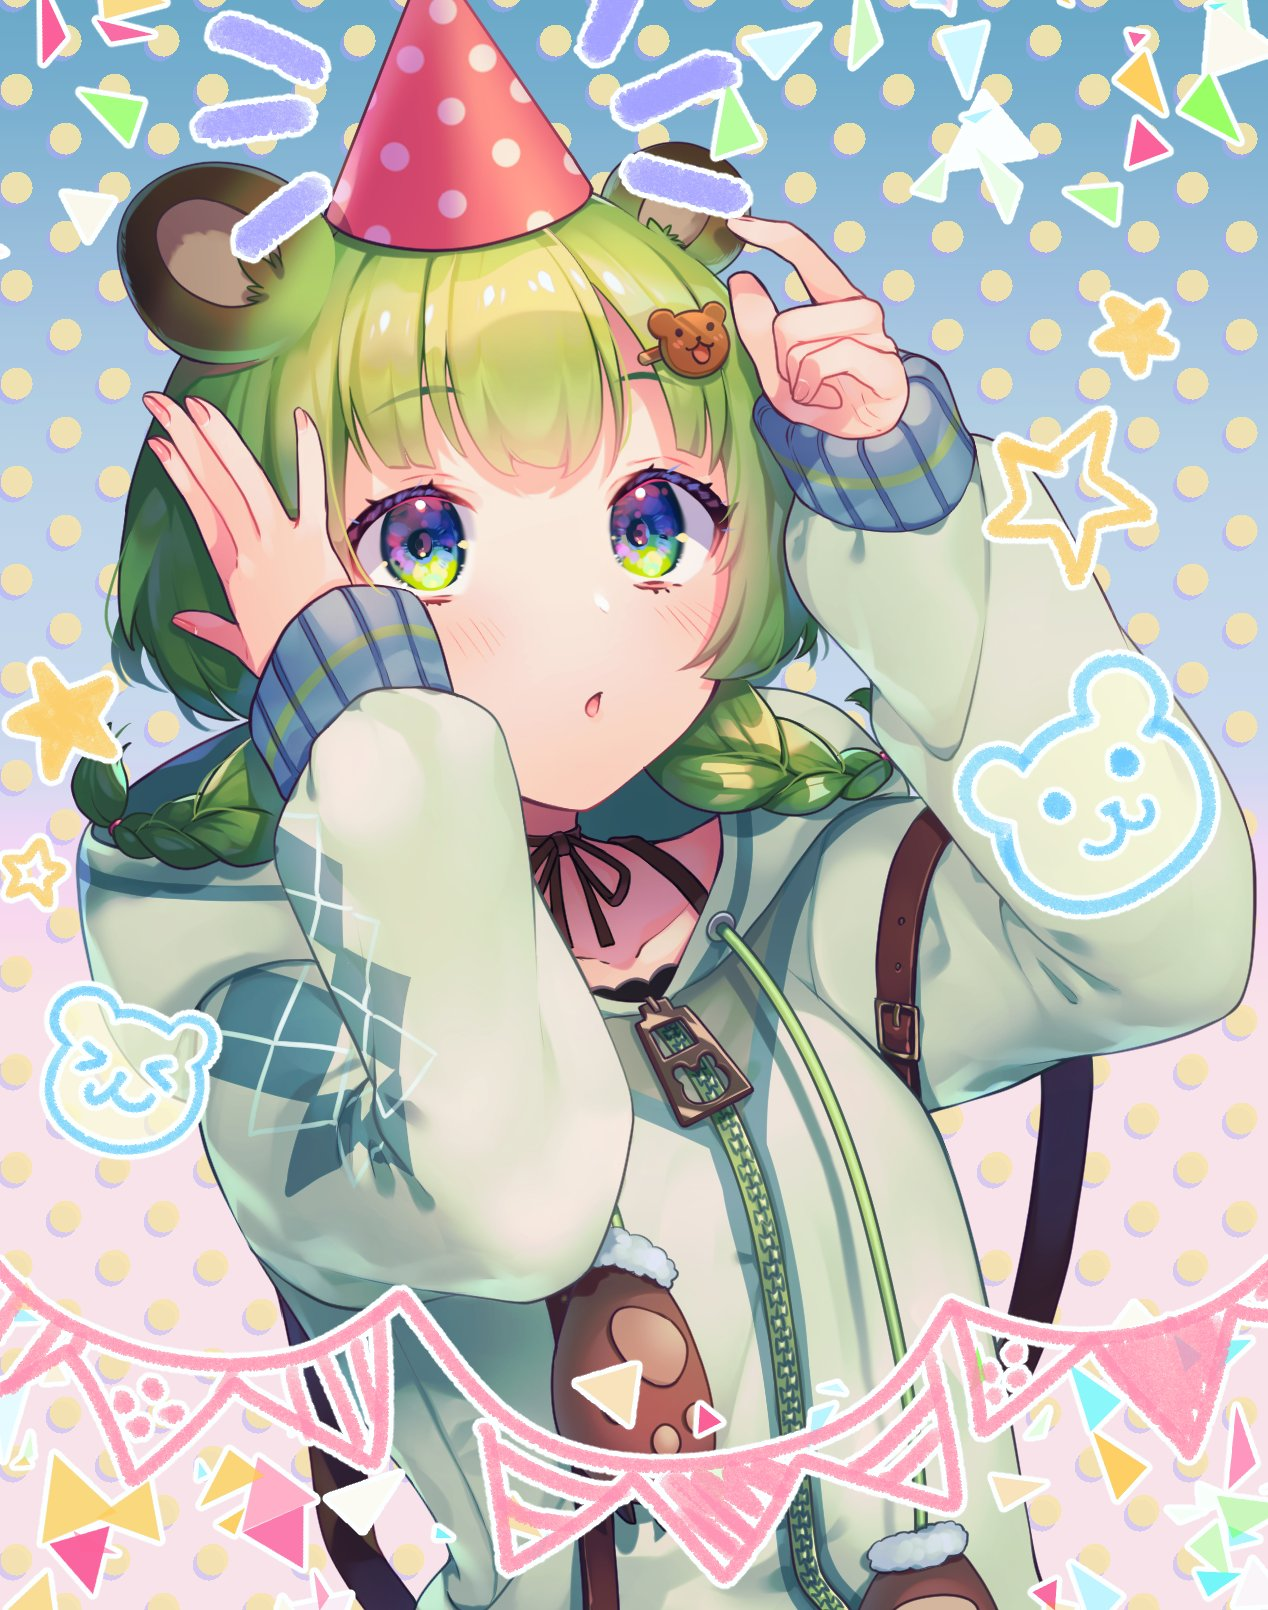 1girl animal_ear_fluff animal_ears animare bangs bbbannooo bear_ears bear_hair_ornament blush braid collarbone gradient gradient_background green_eyes green_hair green_hoodie hair_ornament hairclip hat highres hinokuma_ran hood hood_down hoodie long_sleeves looking_up medium_hair parted_lips party_hat polka_dot polka_dot_background solo twin_braids upper_body virtual_youtuber zipper zipper_pull_tab